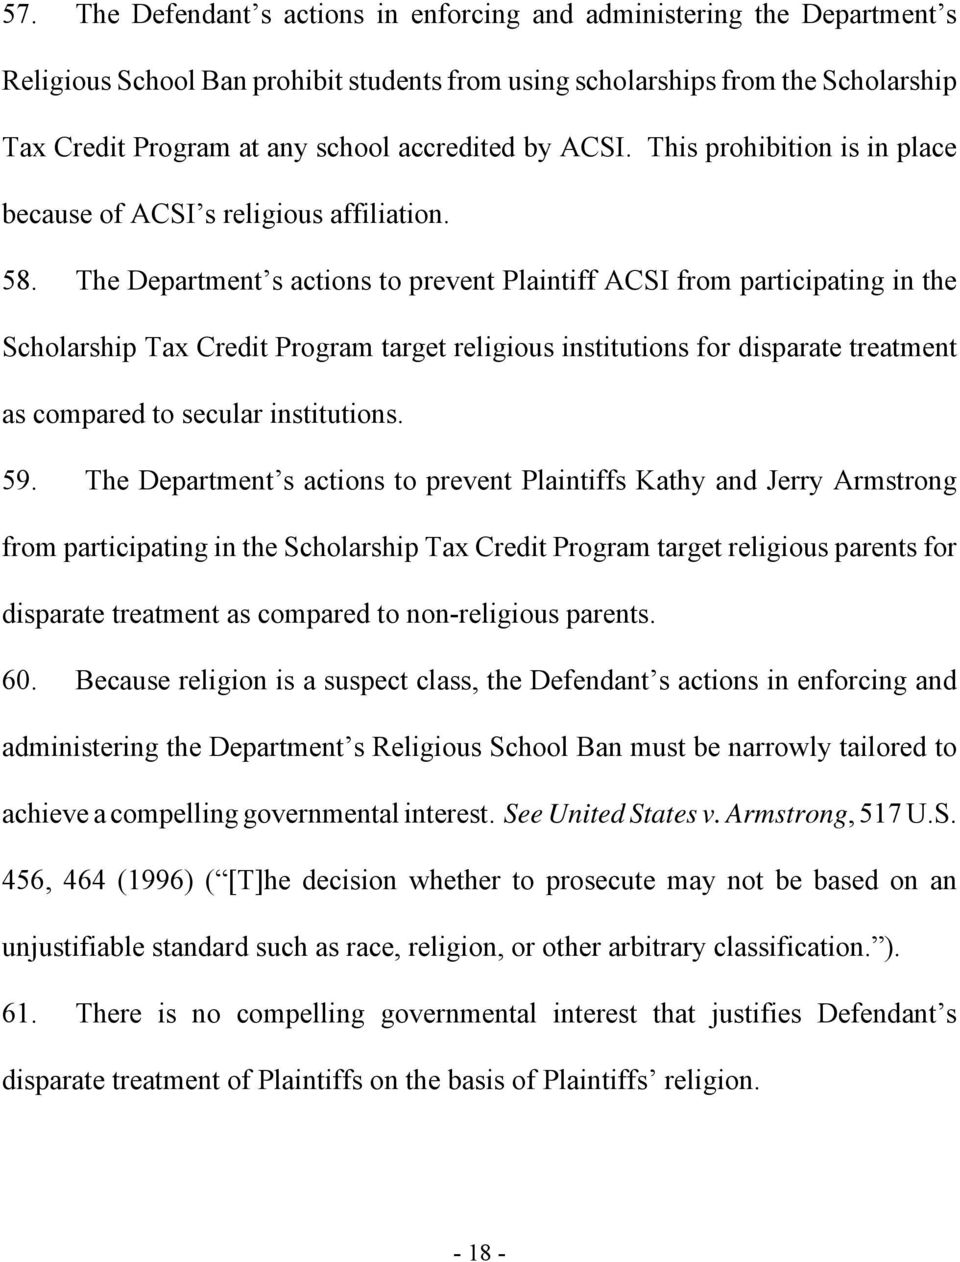 The Department s actions to prevent Plaintiff ACSI from participating in the Scholarship Tax Credit Program target religious institutions for disparate treatment as compared to secular institutions.